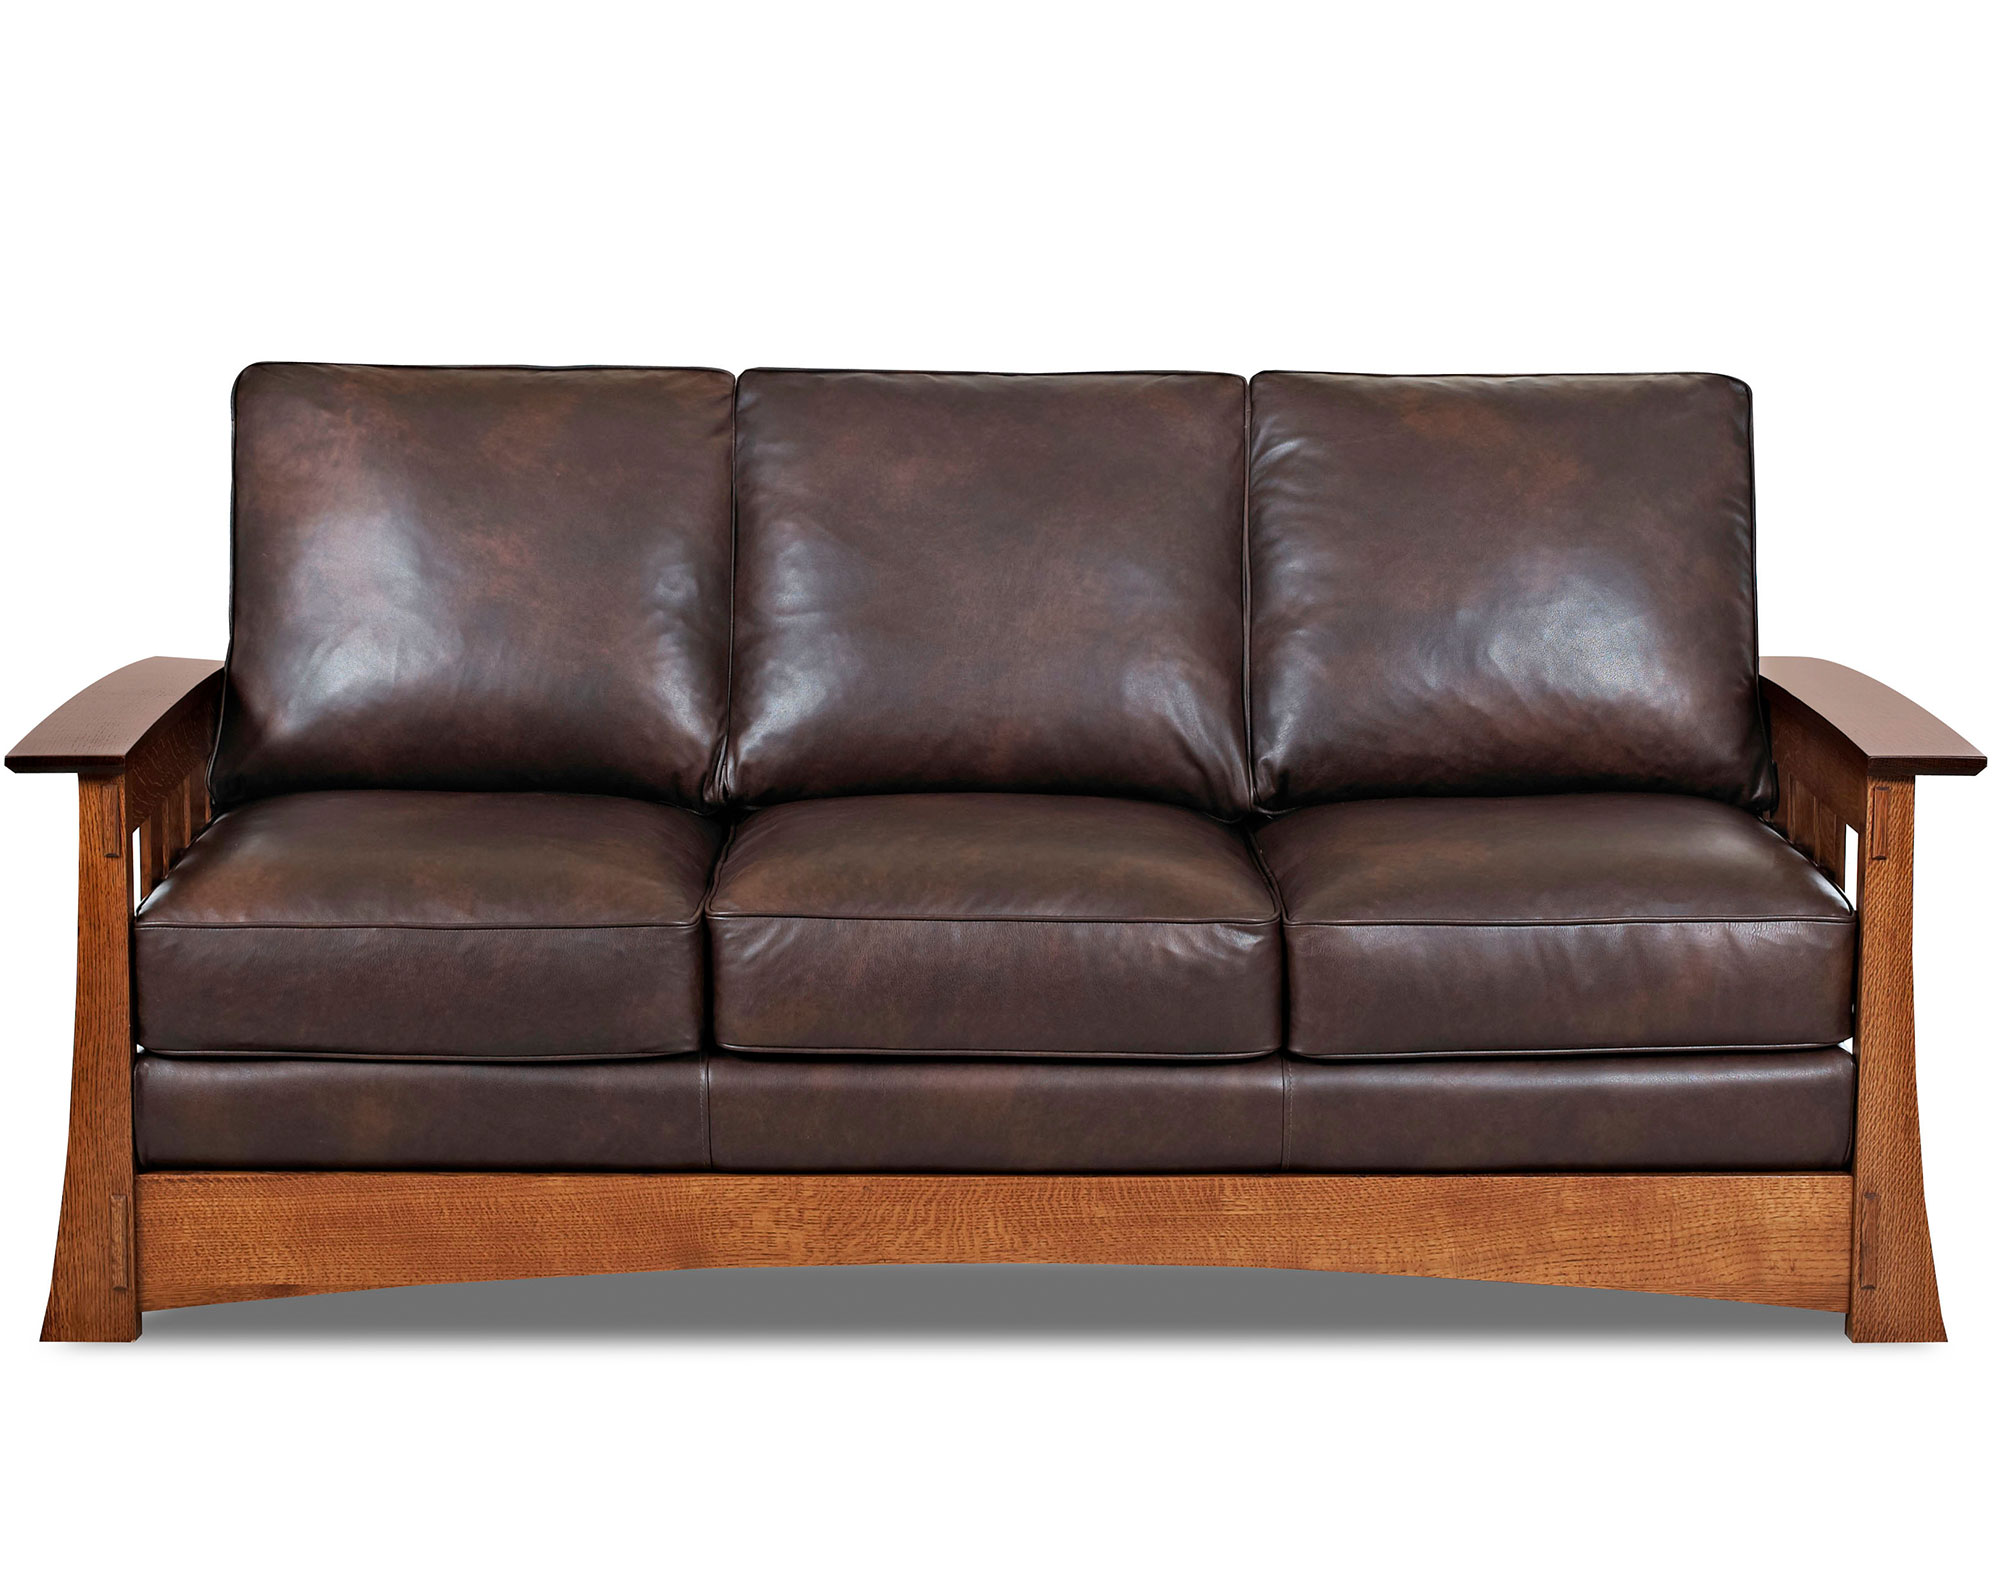 Wood Trimmed Mission Leather Sofas